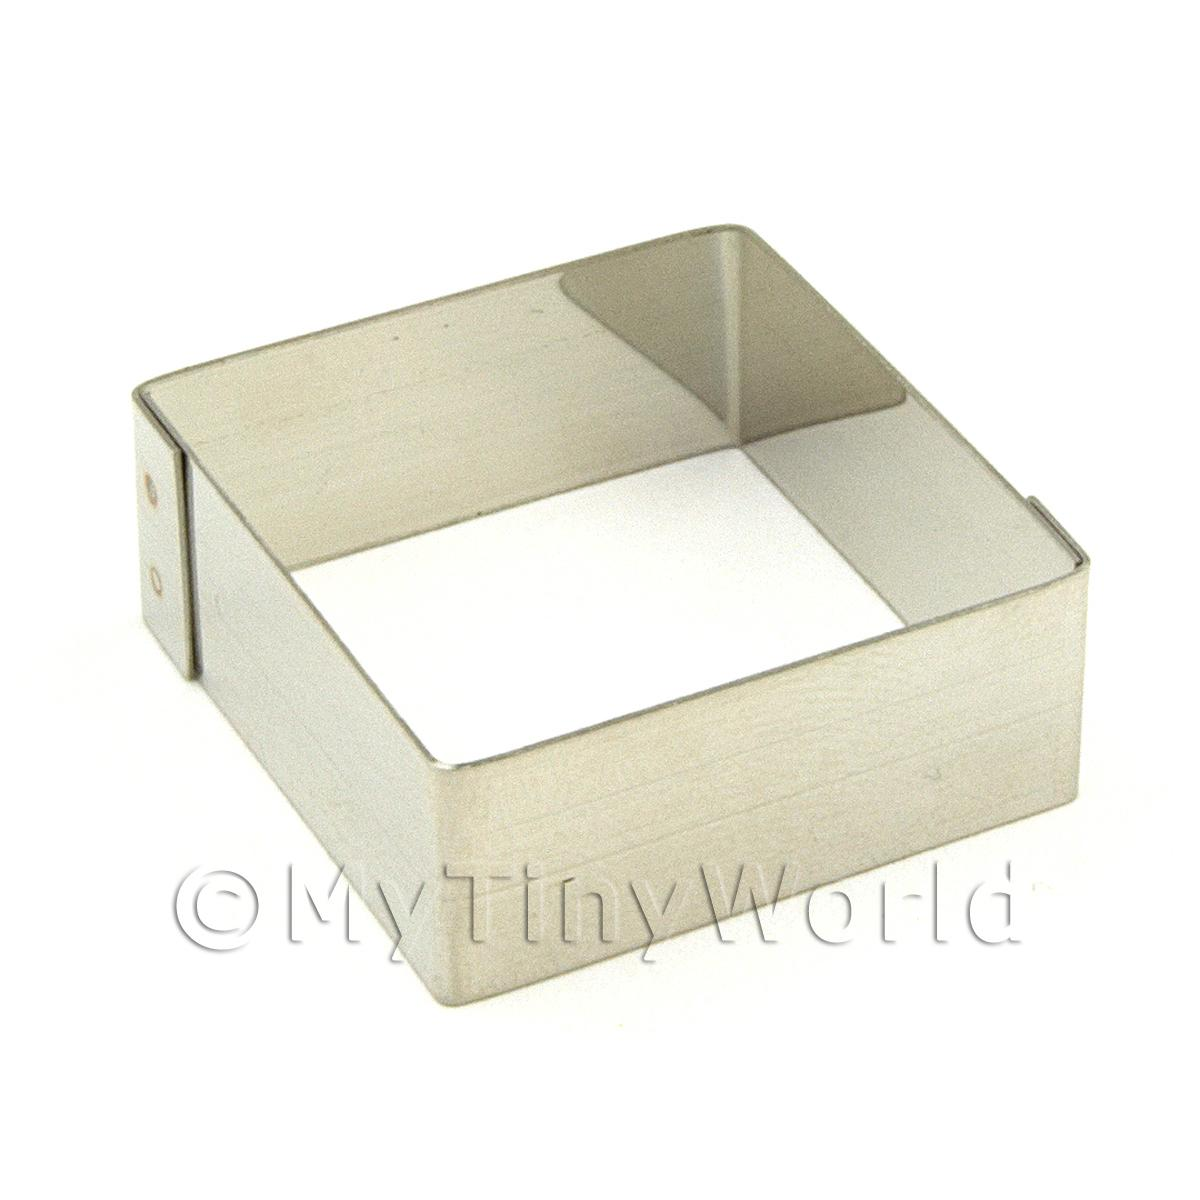 Metal Square Shape Sugarcraft / Clay Cutter (30mm)